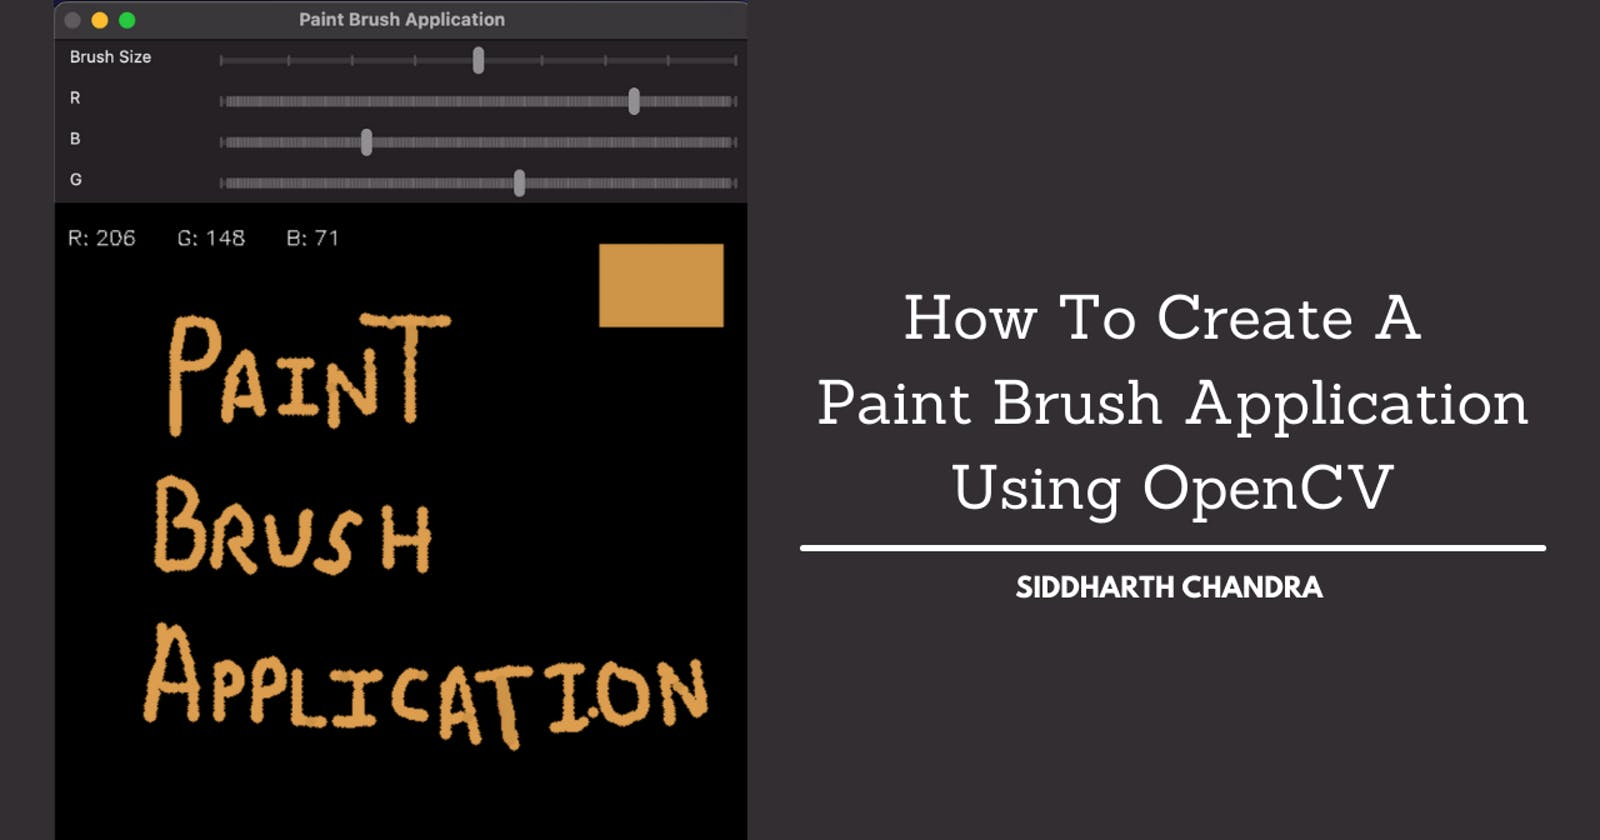 How To Create A Paint Brush Application Using OpenCV